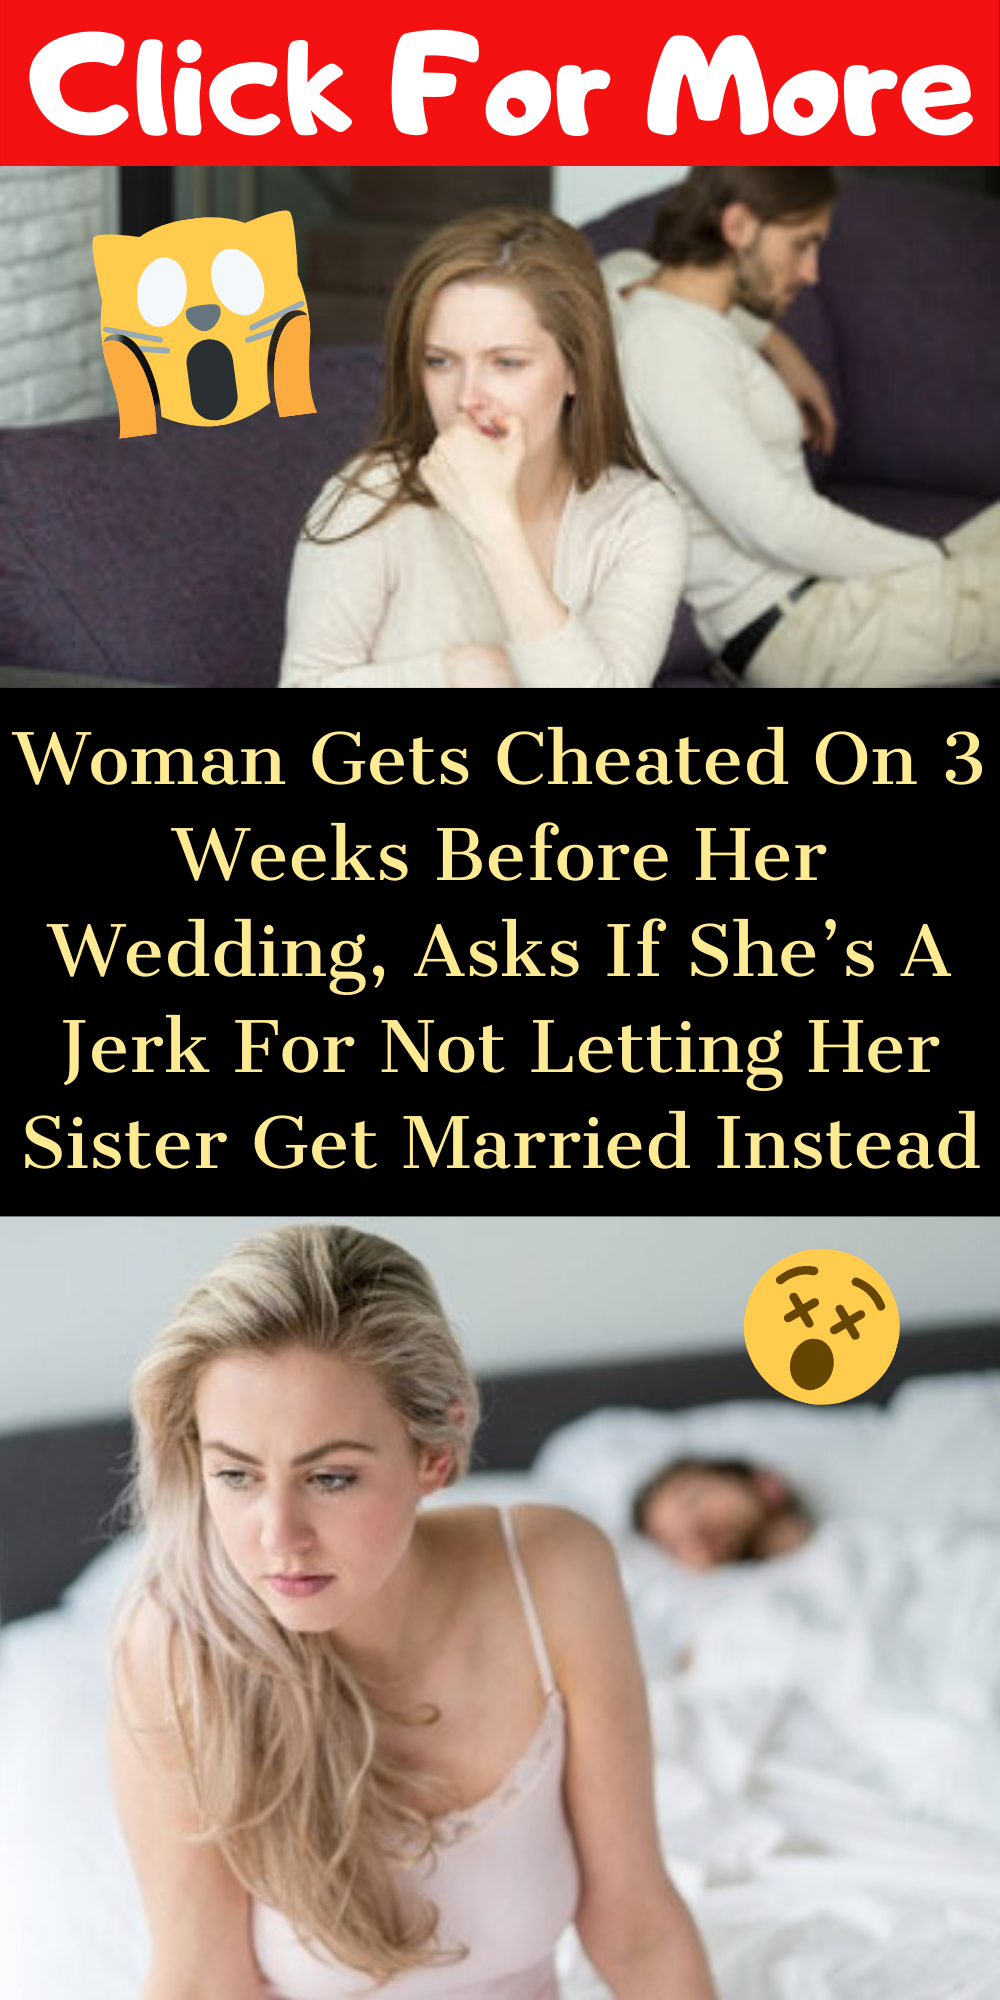 Woman Gets Cheated On 3 Weeks Before Her Wedding, Asks If